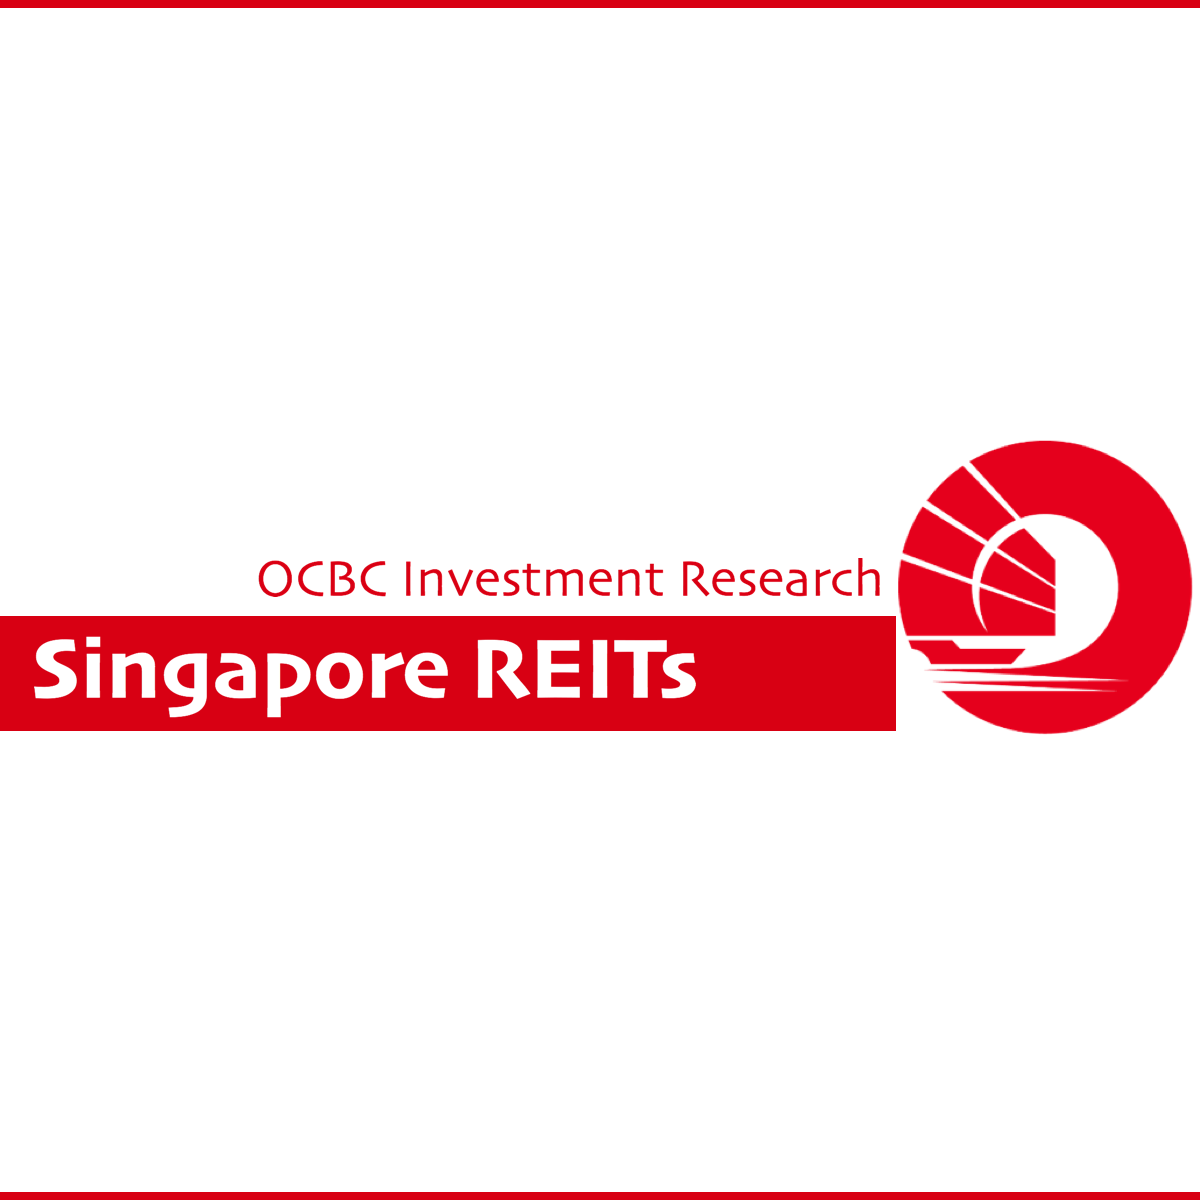 Singapore Industrial REITs - OCBC Investment Research 2018-09-04: Still Active On Acquisition Front